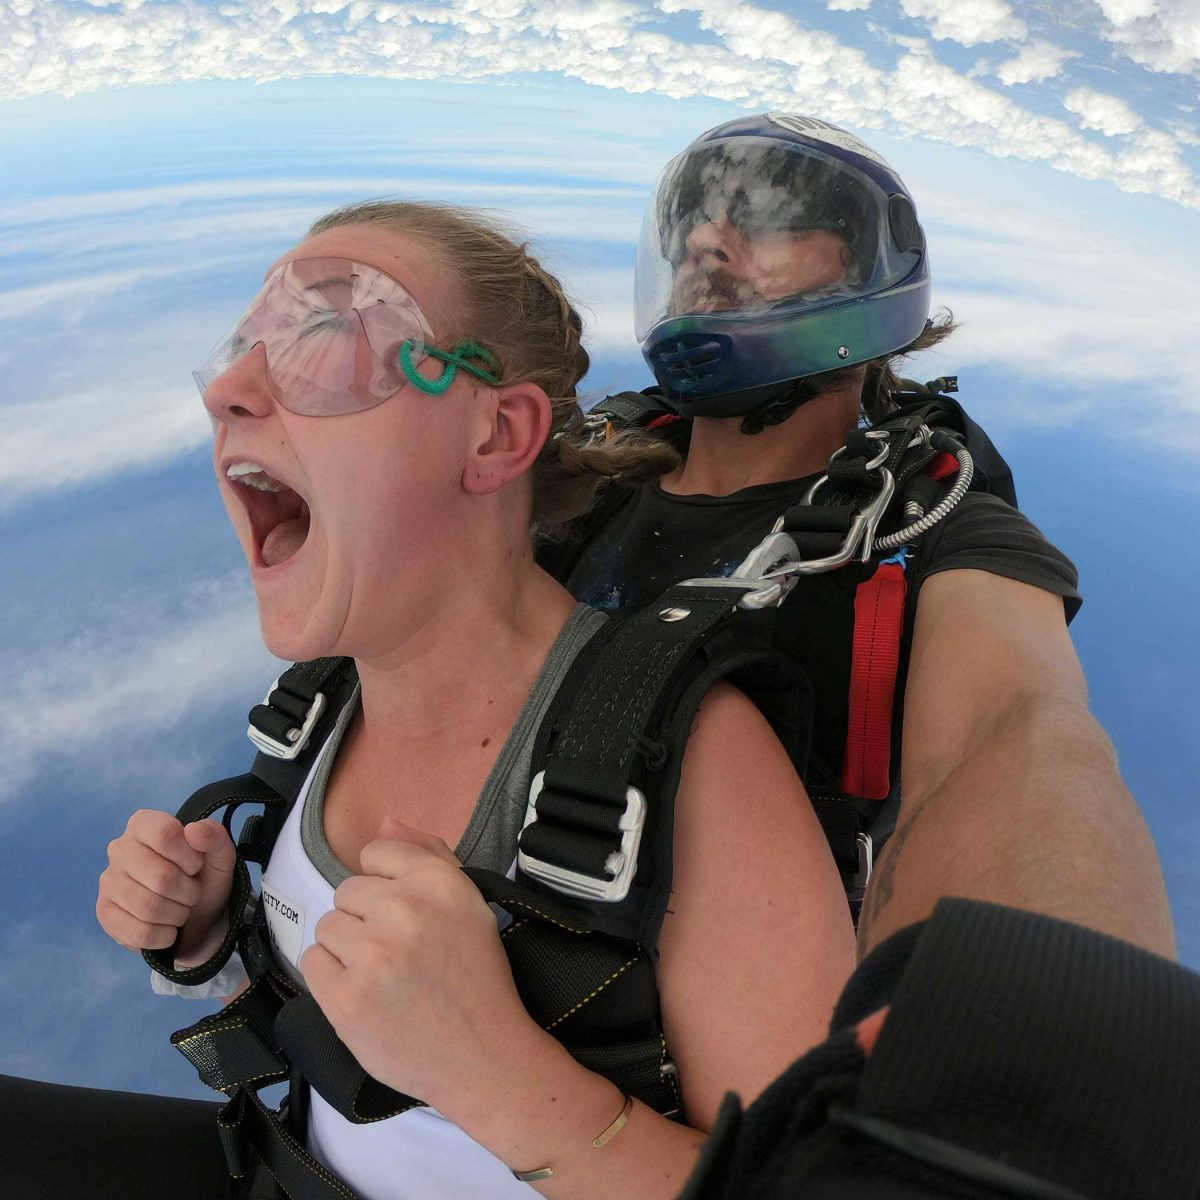 Female tandem student enjoying free fall while skydiving at Skydive City Z-Hills